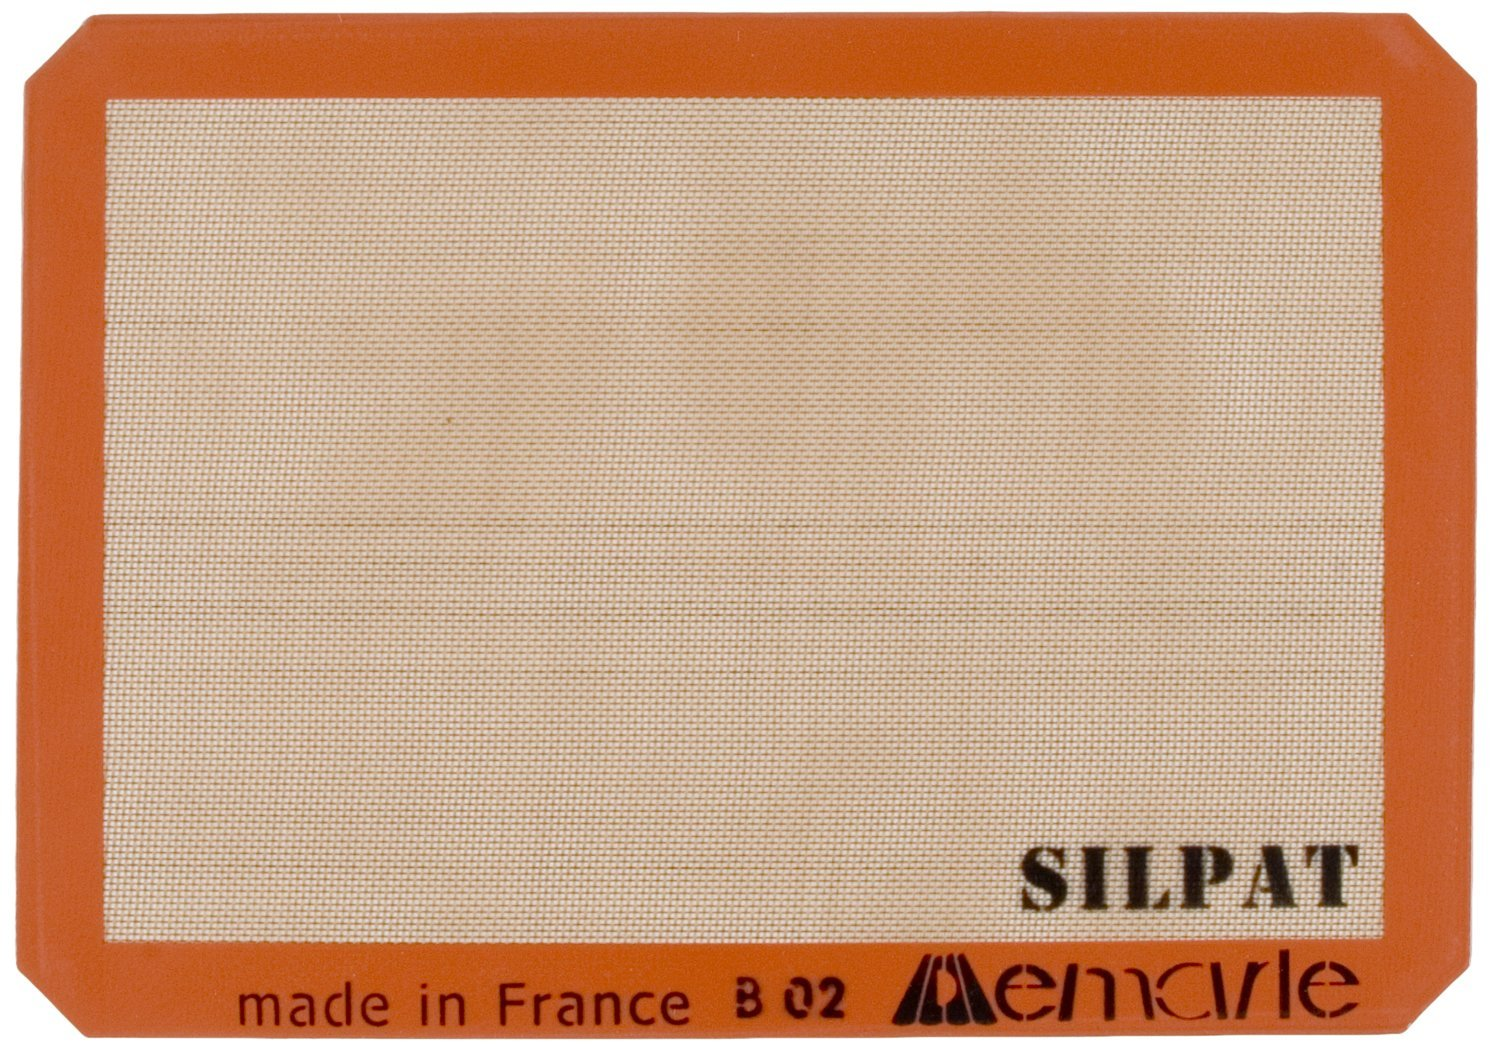 Silpat Premium Non-Stick Silicone Baking Mat, Half Sheet Size, 11-5/8'' x 16-1/2'' by Silpat